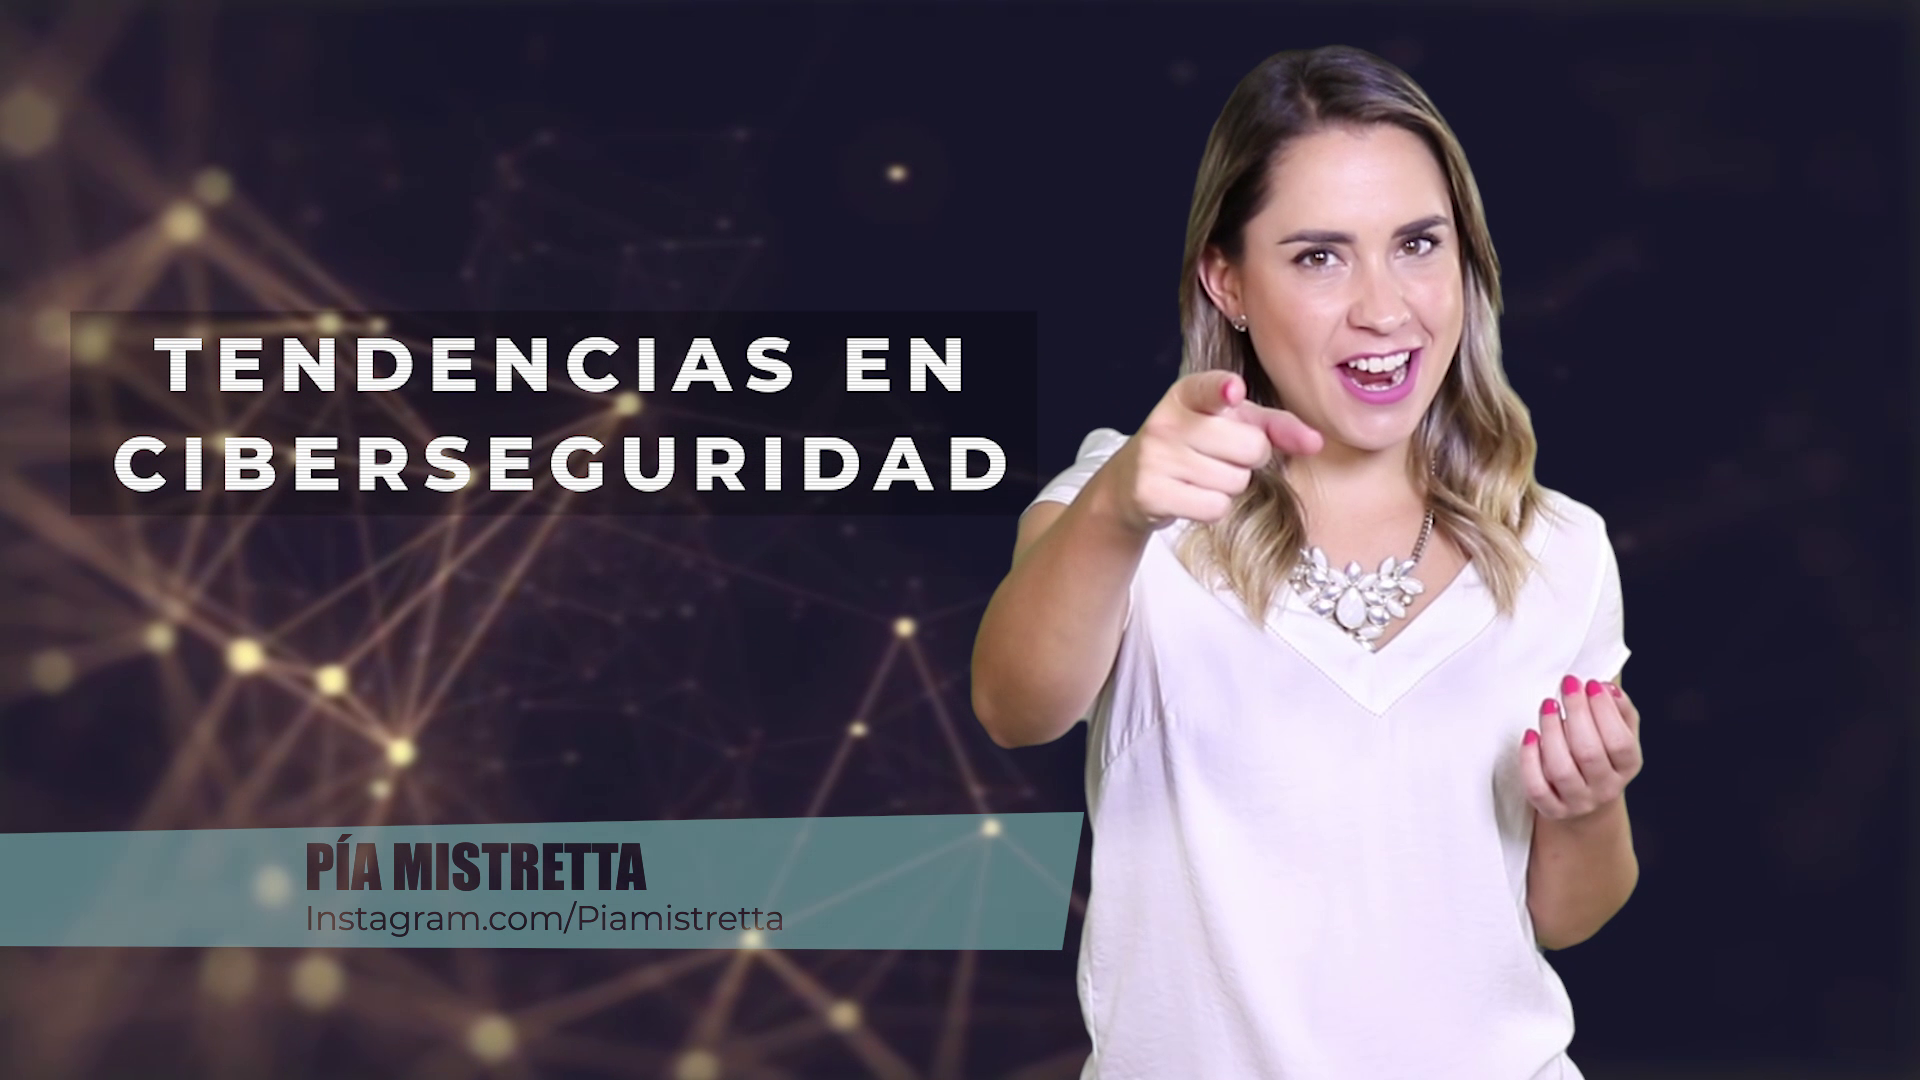 Tendencias en ciberseguridad, IT Masters News